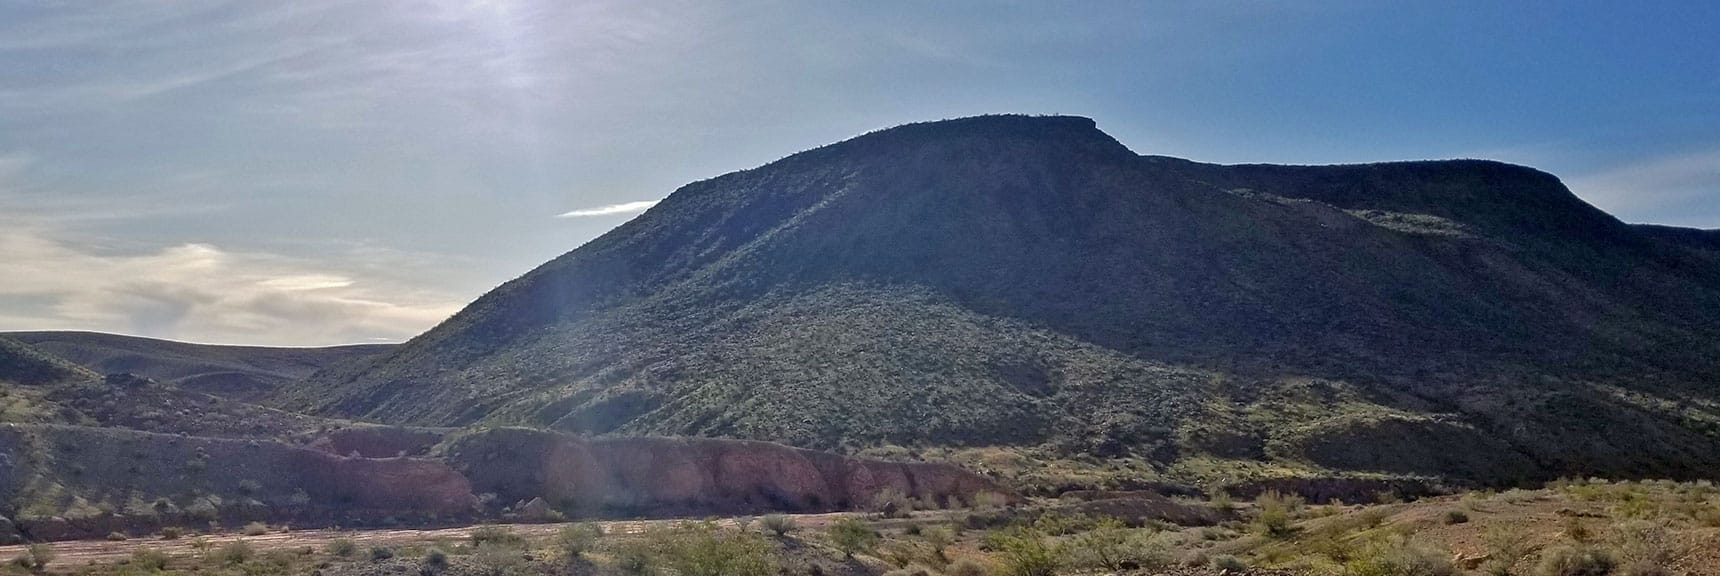 View of North Western Side of Black Mesa in Lake Mead National Recreation Area, Nevada